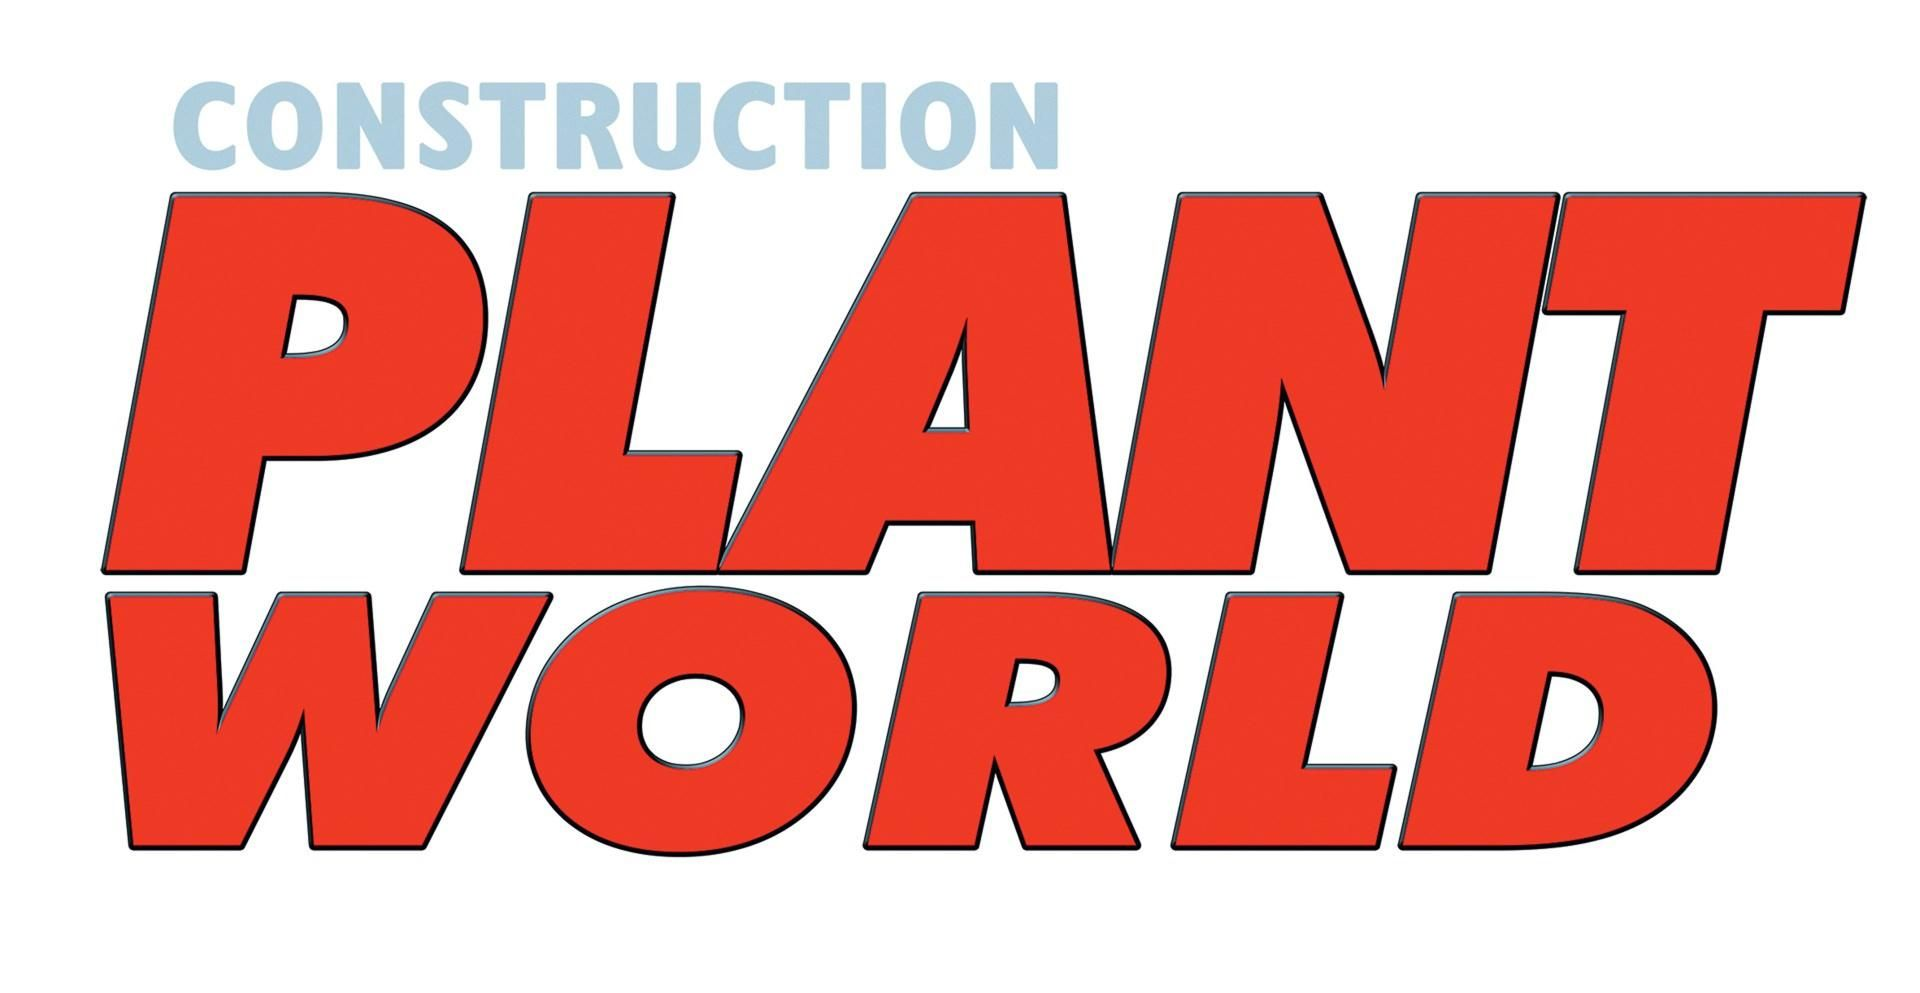 Construction Plant World